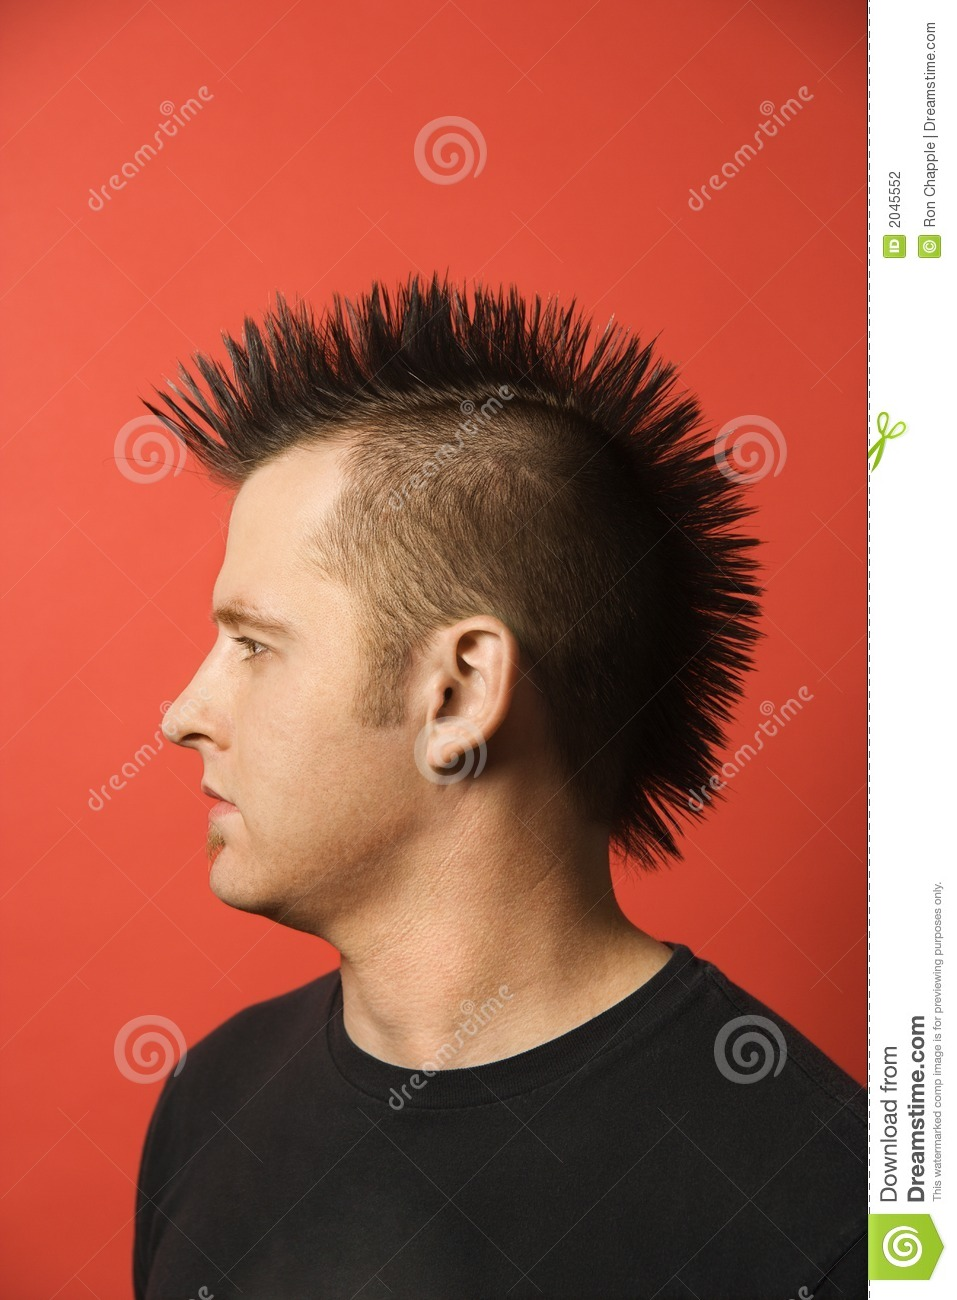 Fashion design contest 2017 - Man With Mohawk Stock Photography Image 2045552